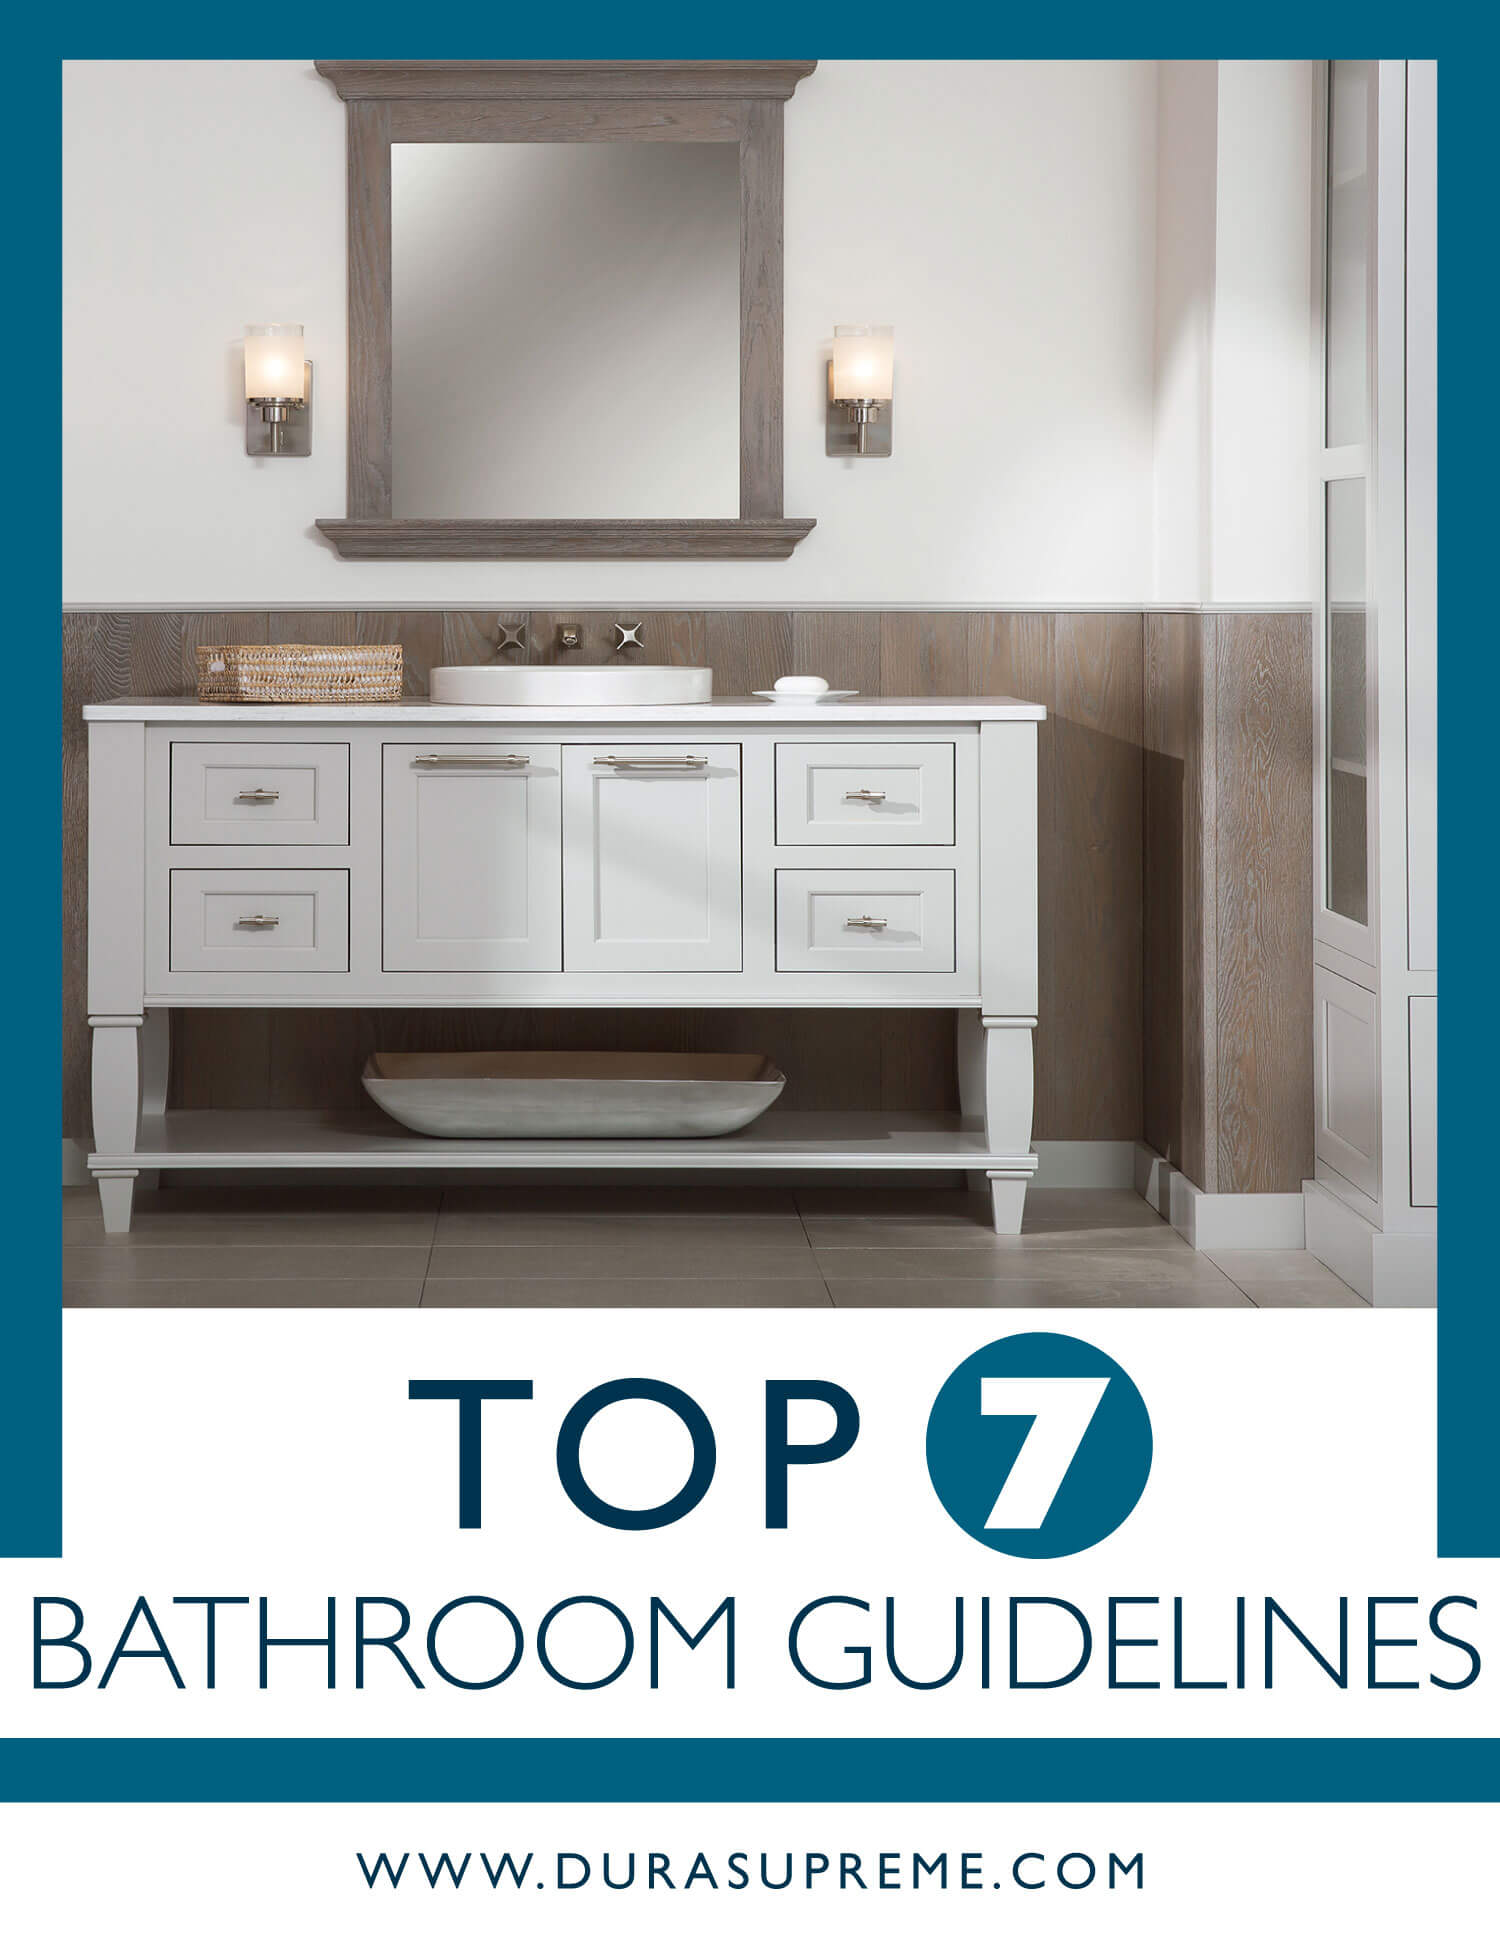 Top 7 Bathroom Design Guidelines. Dura Supreme Cabinetry Blog